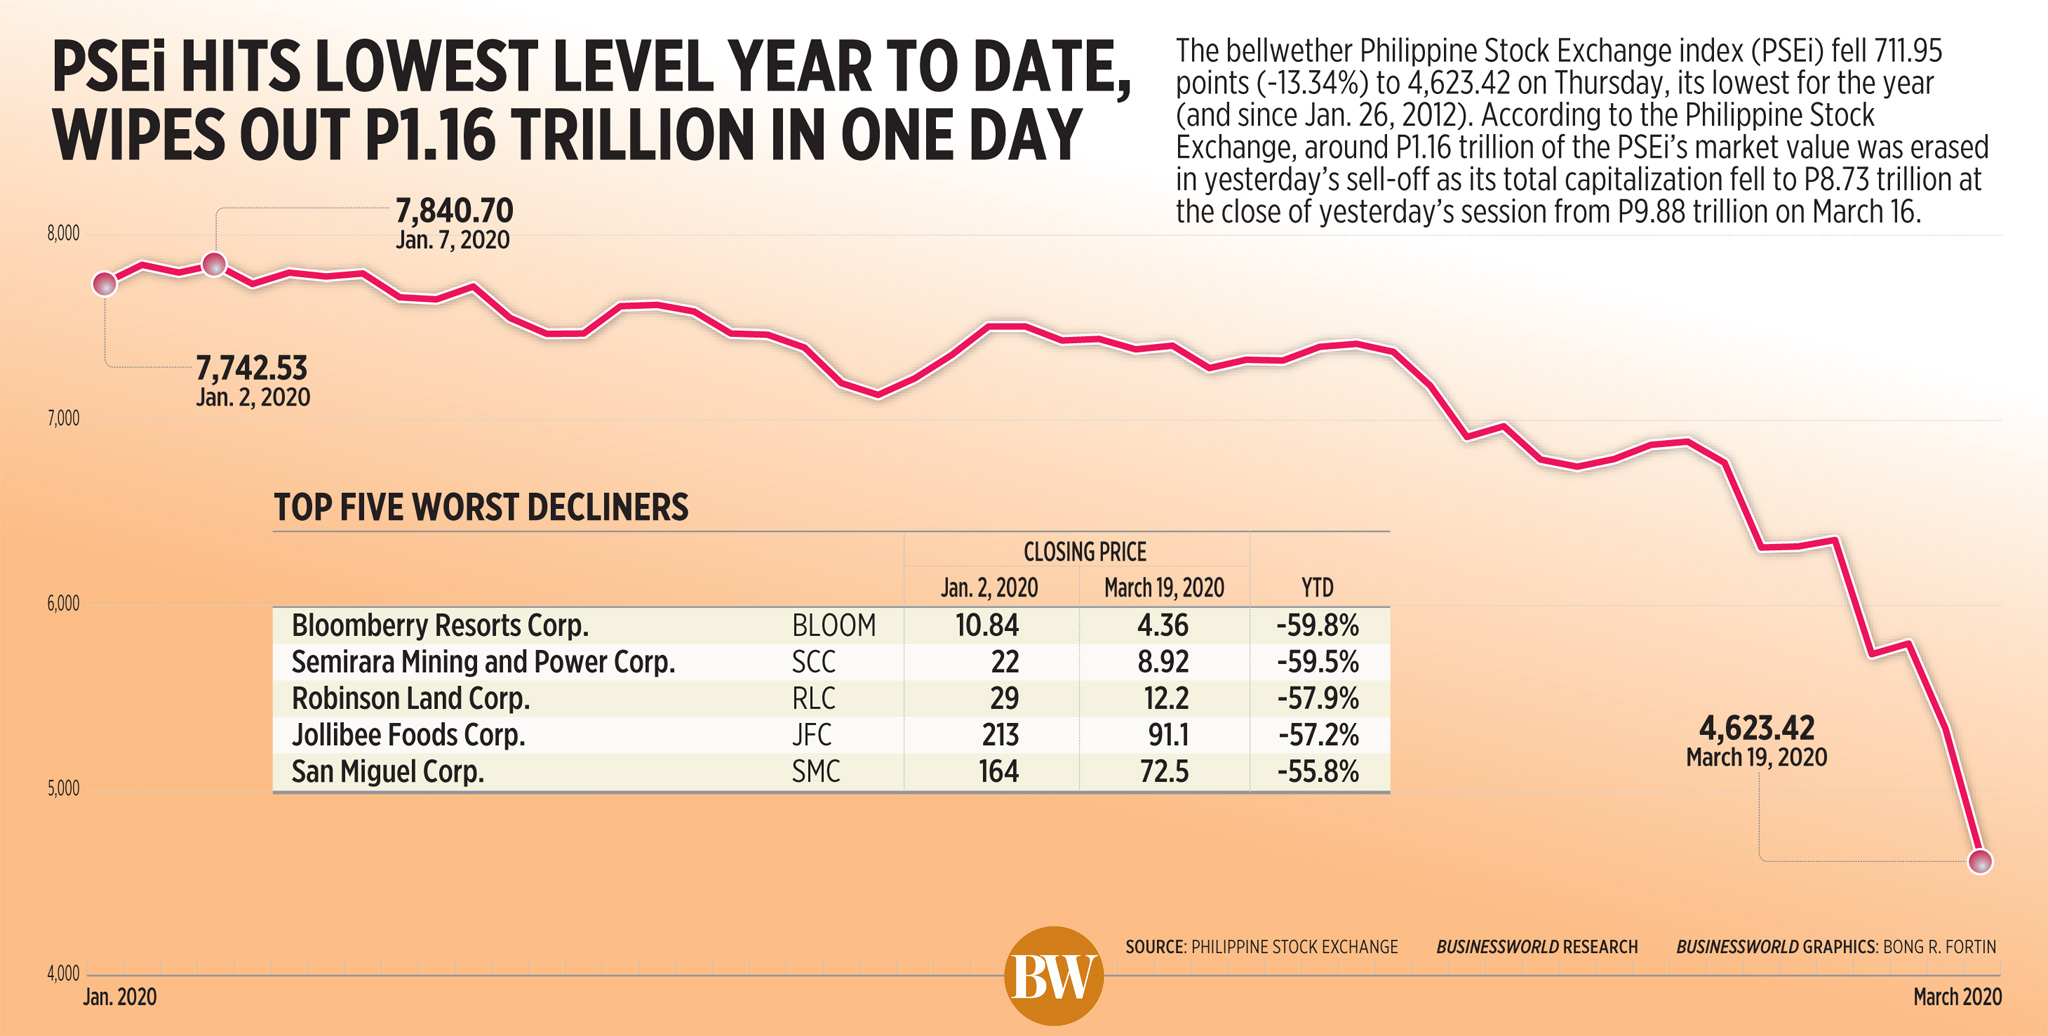 PSEi hits lowest level year to date, wipes out P1.16 trillion in one day